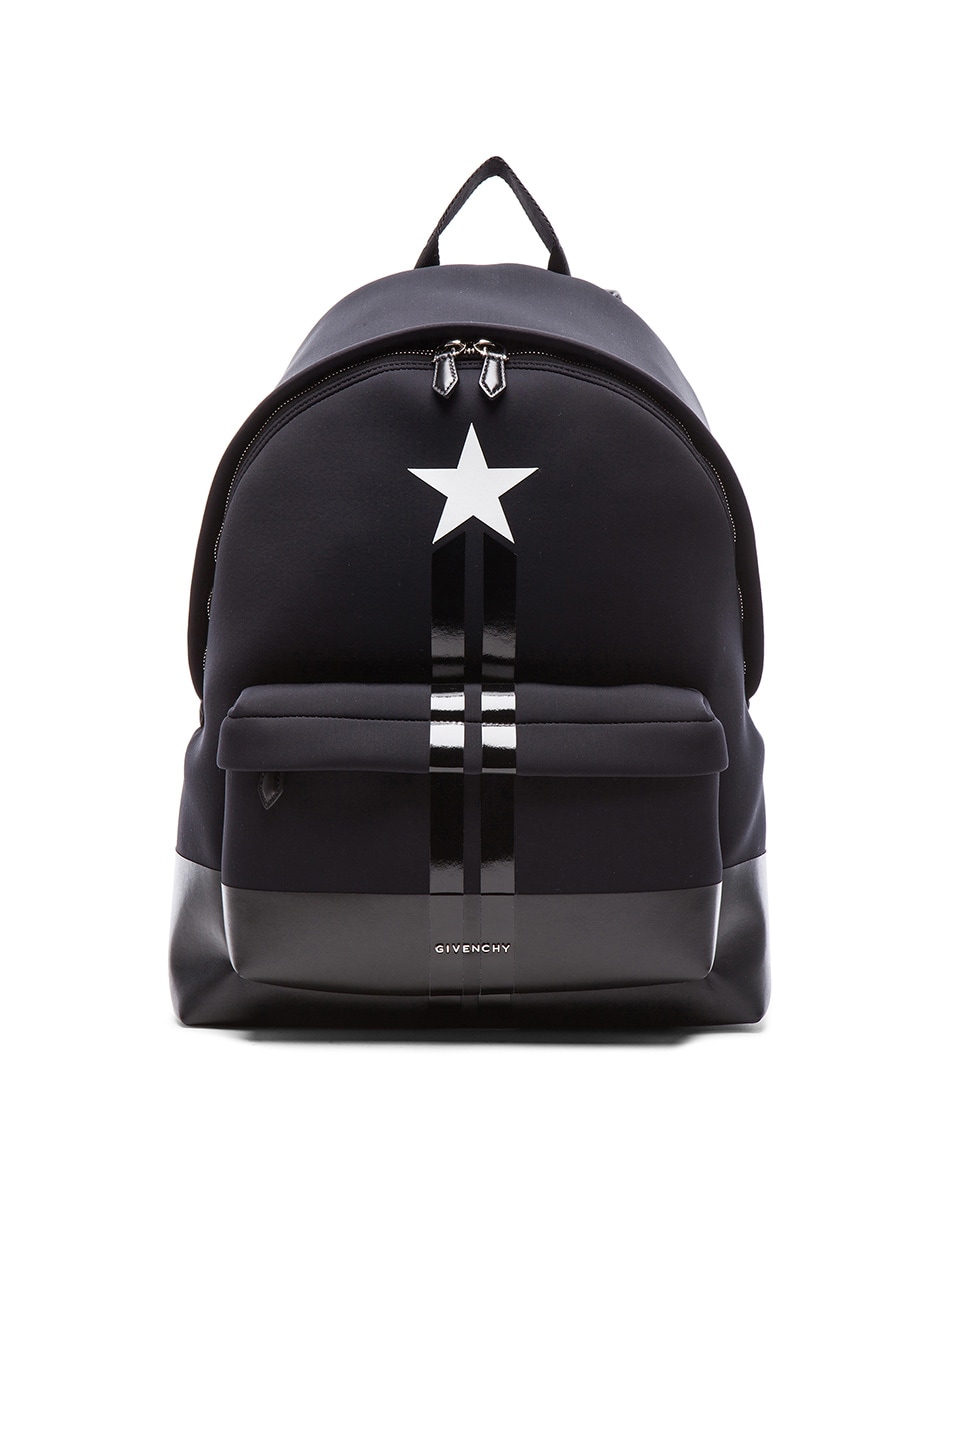 274a40939e Image 1 of Givenchy Neoprene Backpack with Star and Stripes in Black